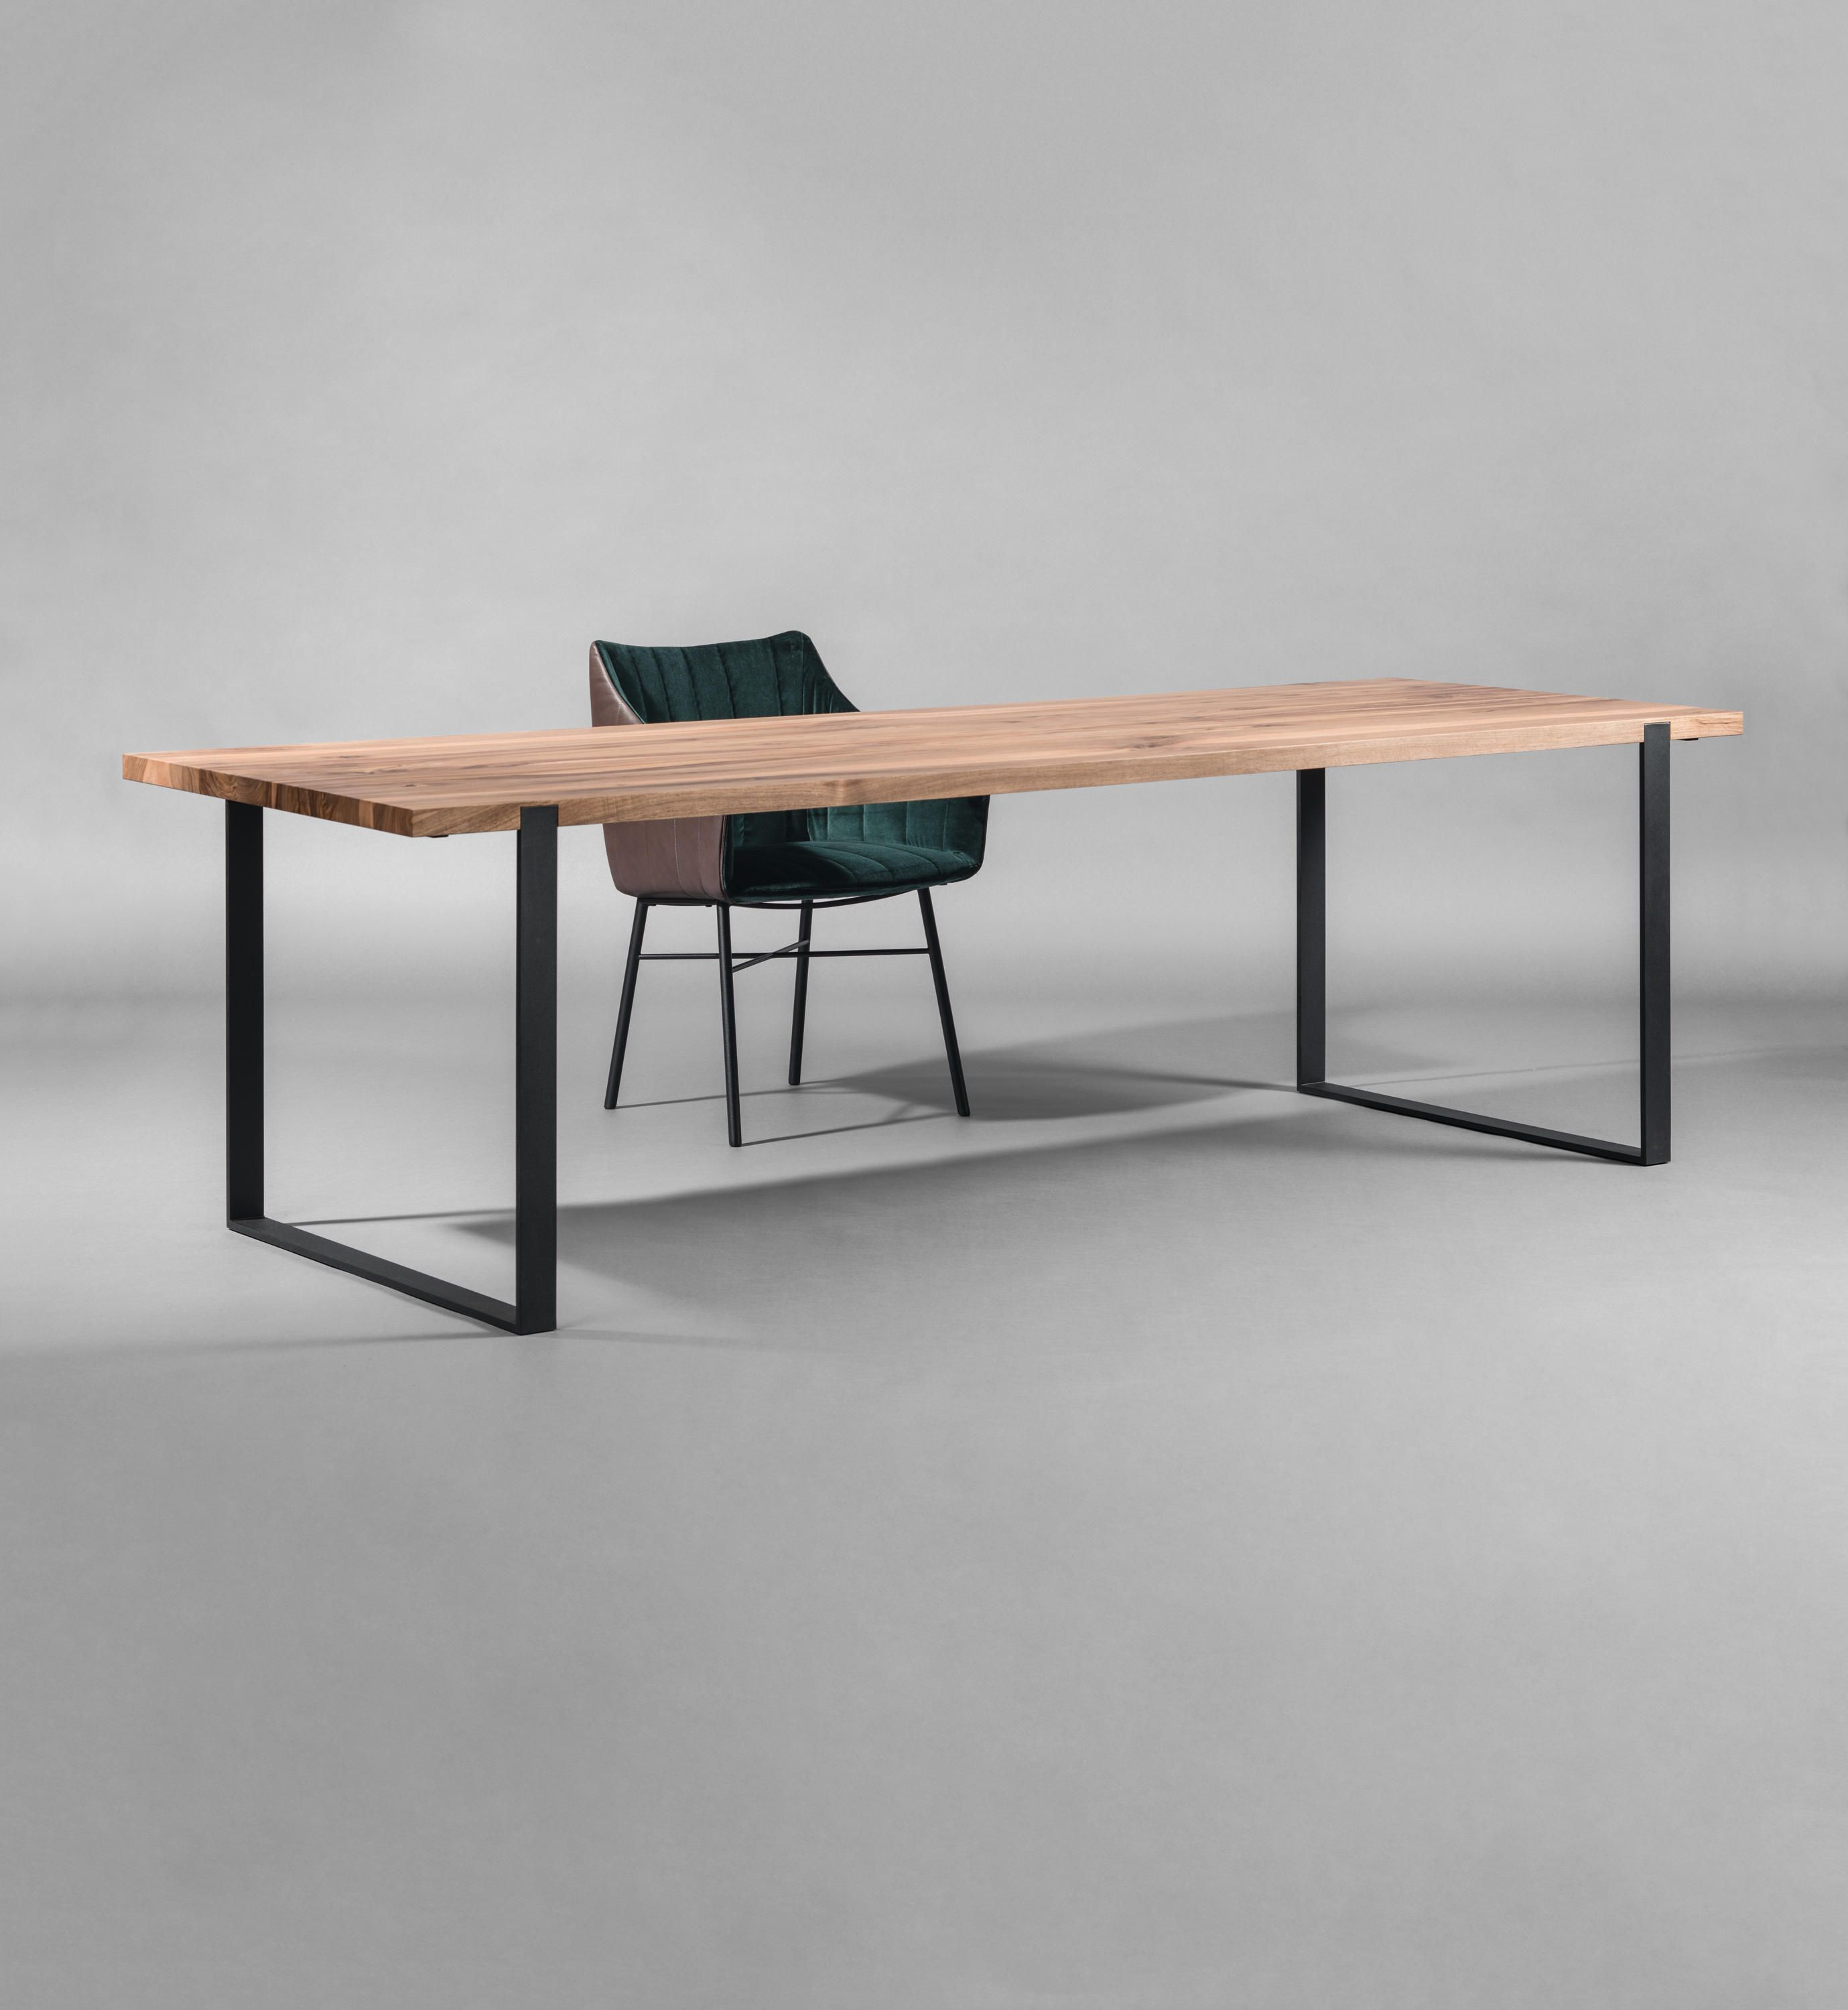 S 700 cpsdesign Table by Janua / Christian Seisenberger